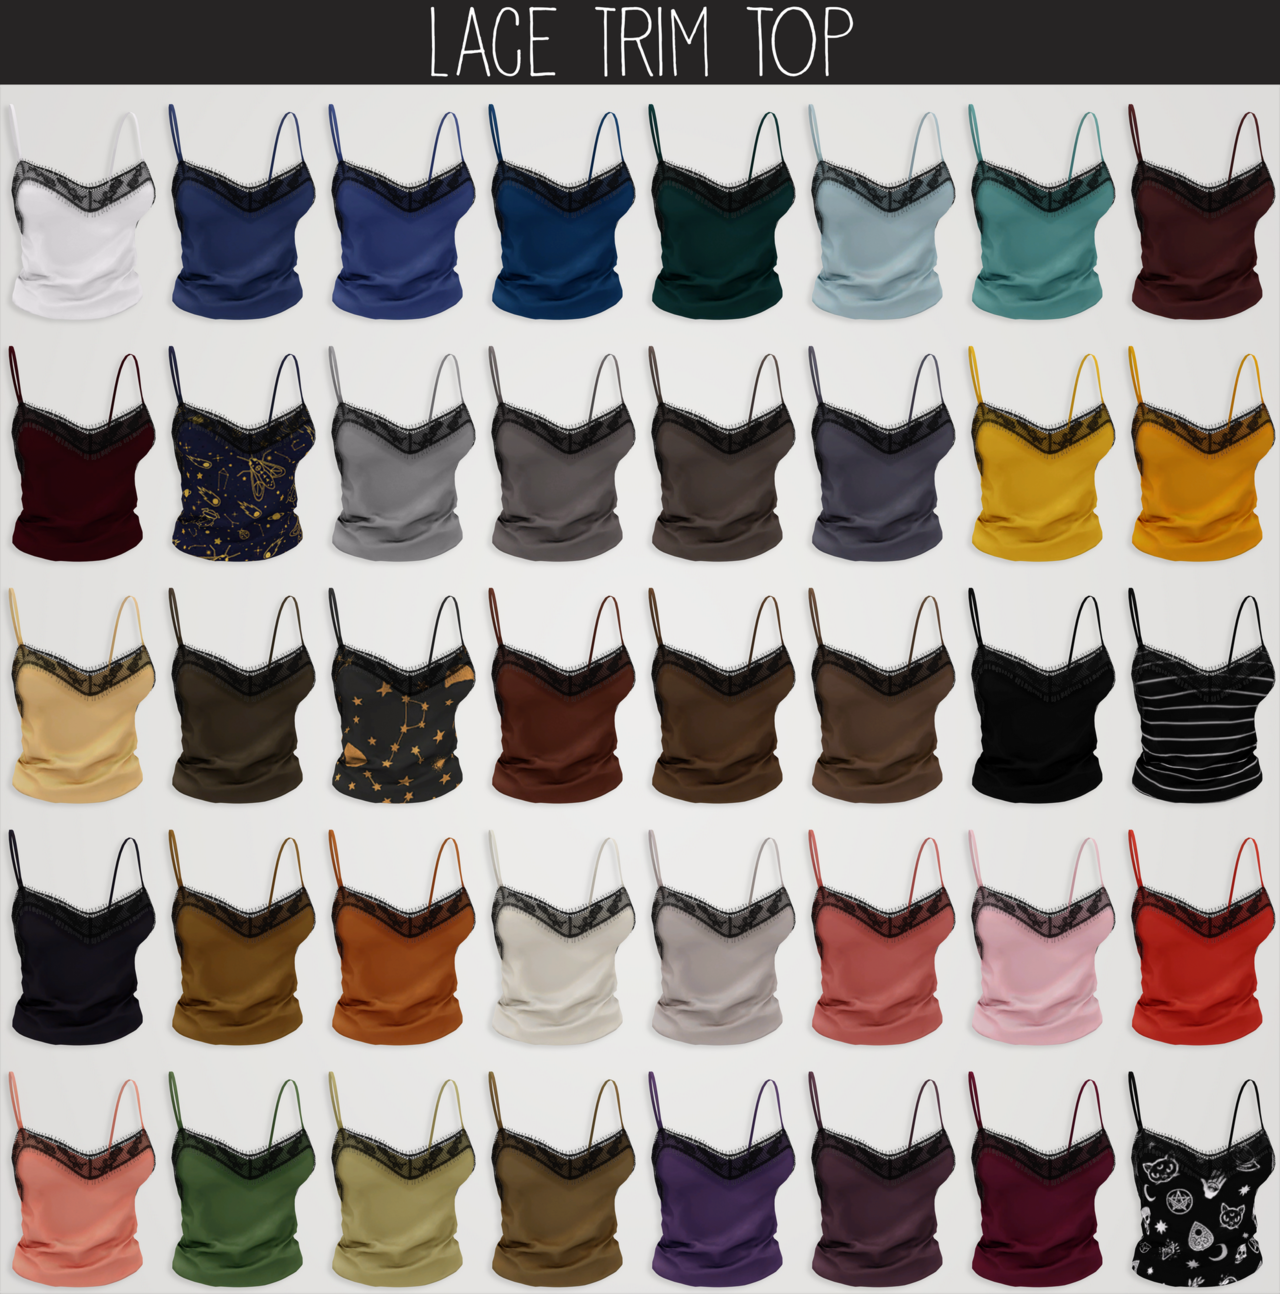 lace trim top by Elliesimple